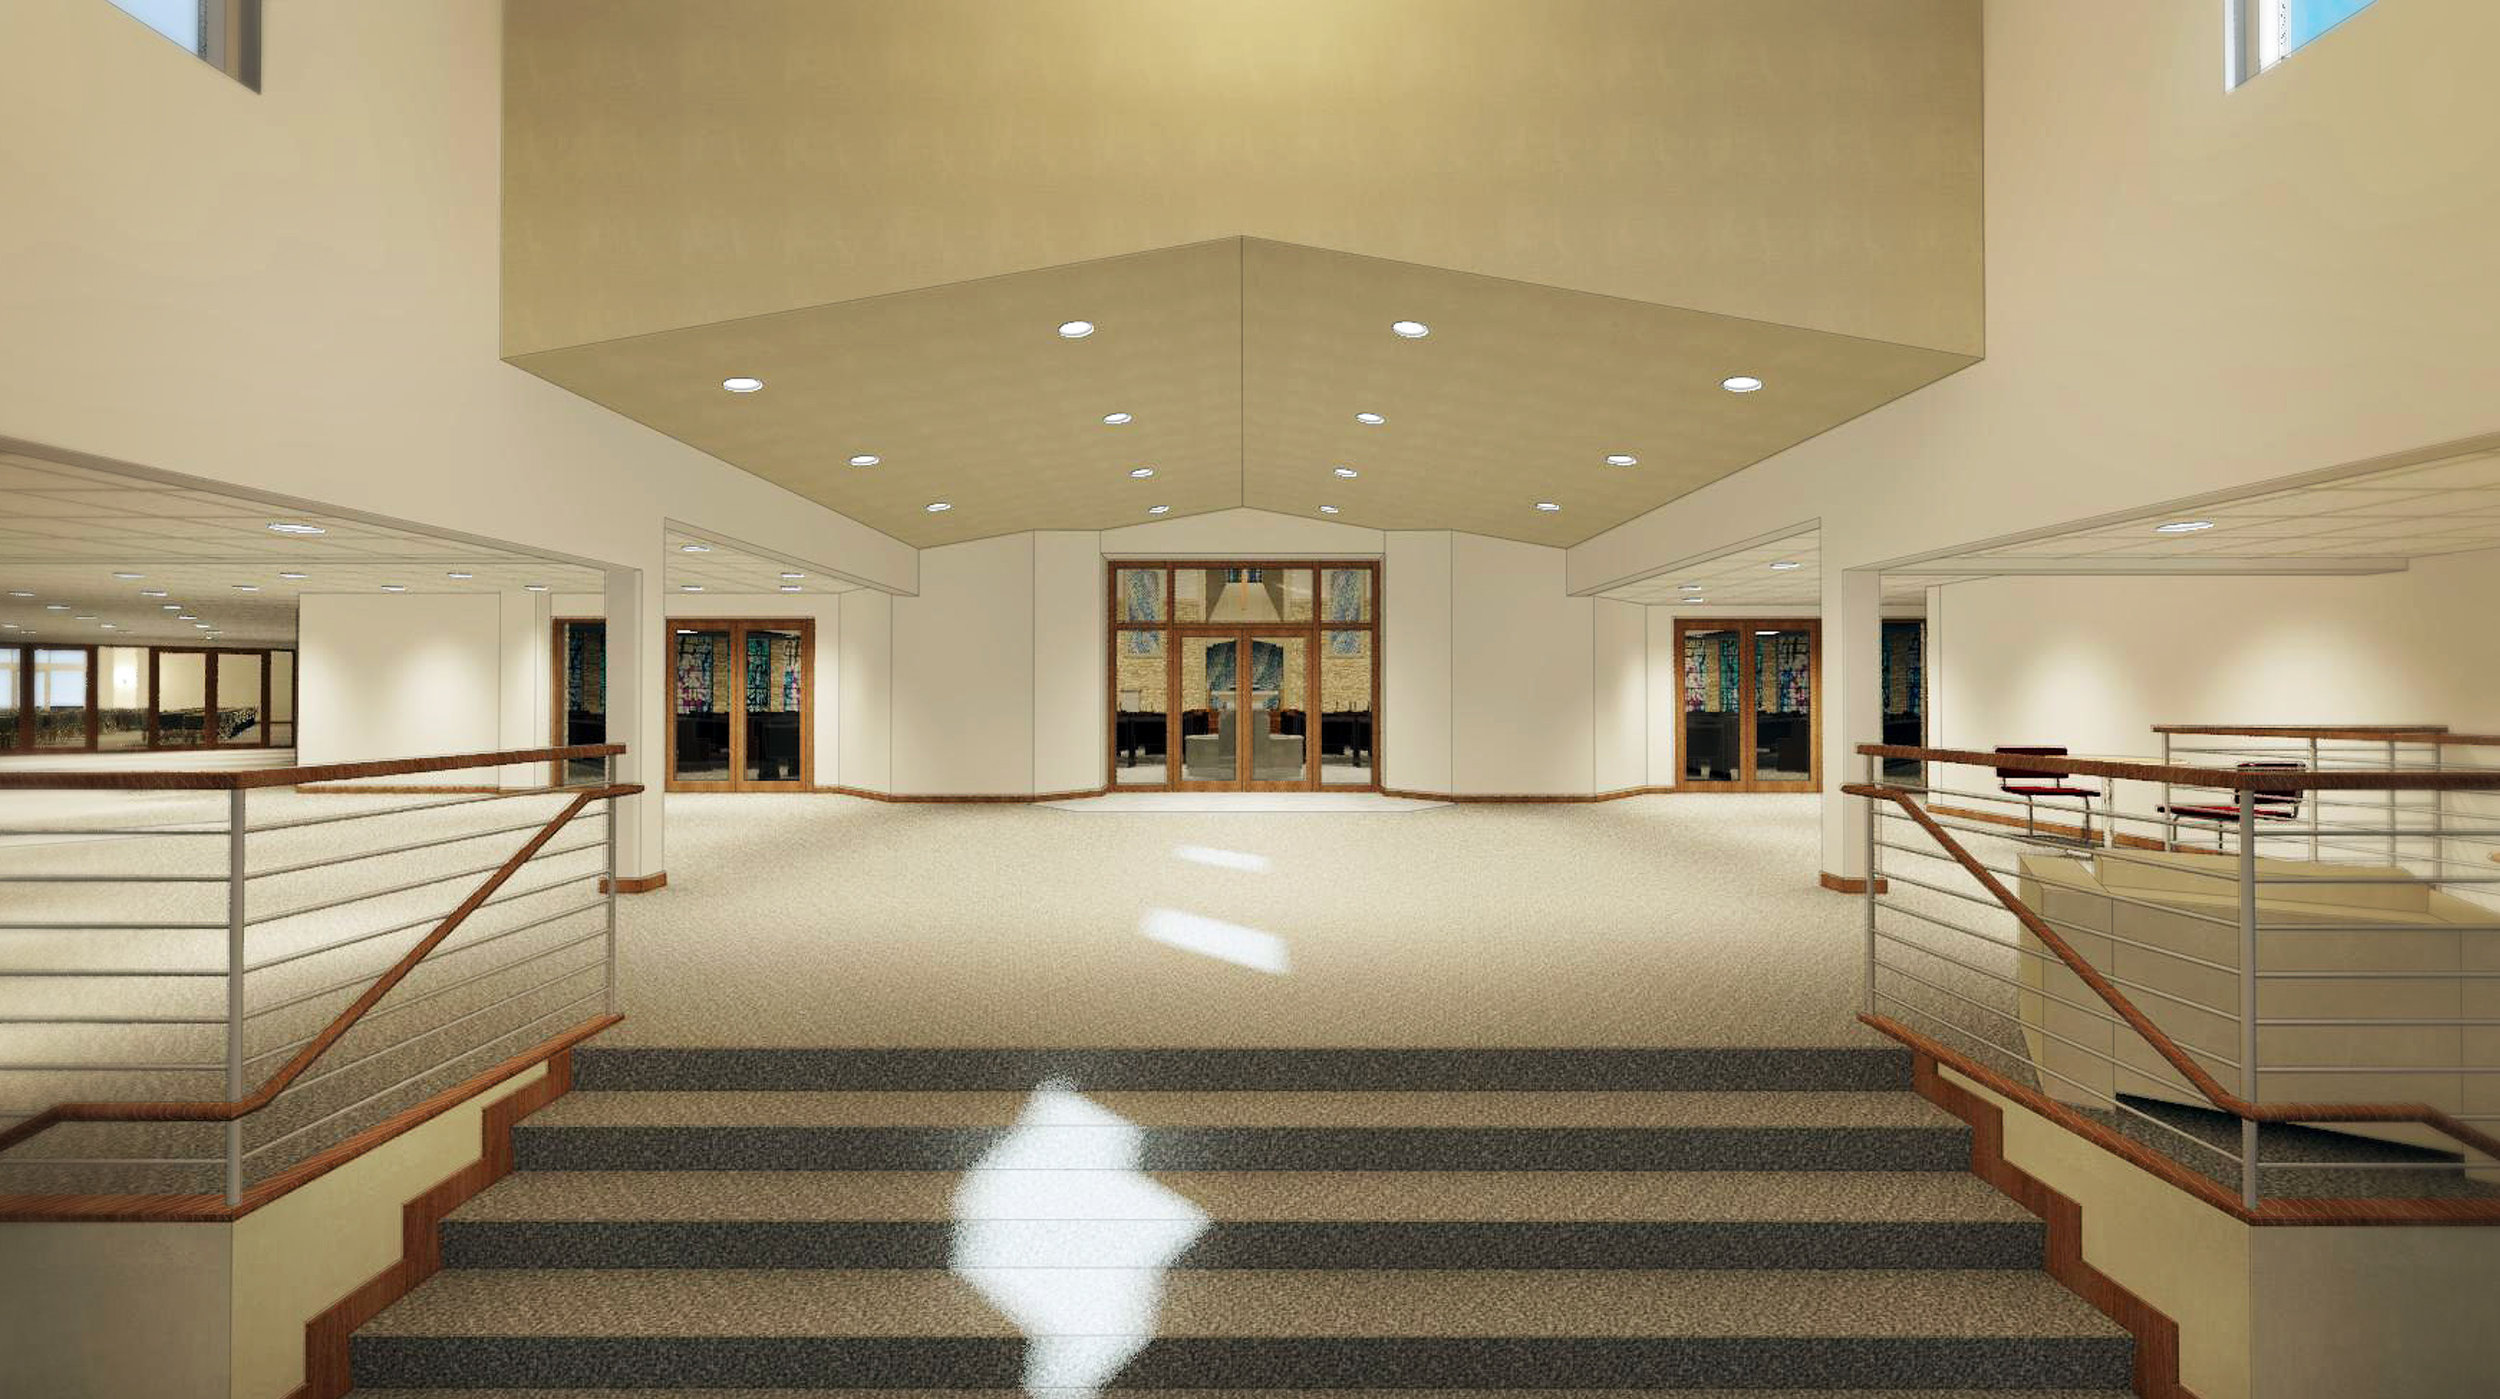 Expanded Narthex with more space for fellowship and community. Windows will allow better viewing into the Sanctuary. Doors to new parish hall visible on far left of image.